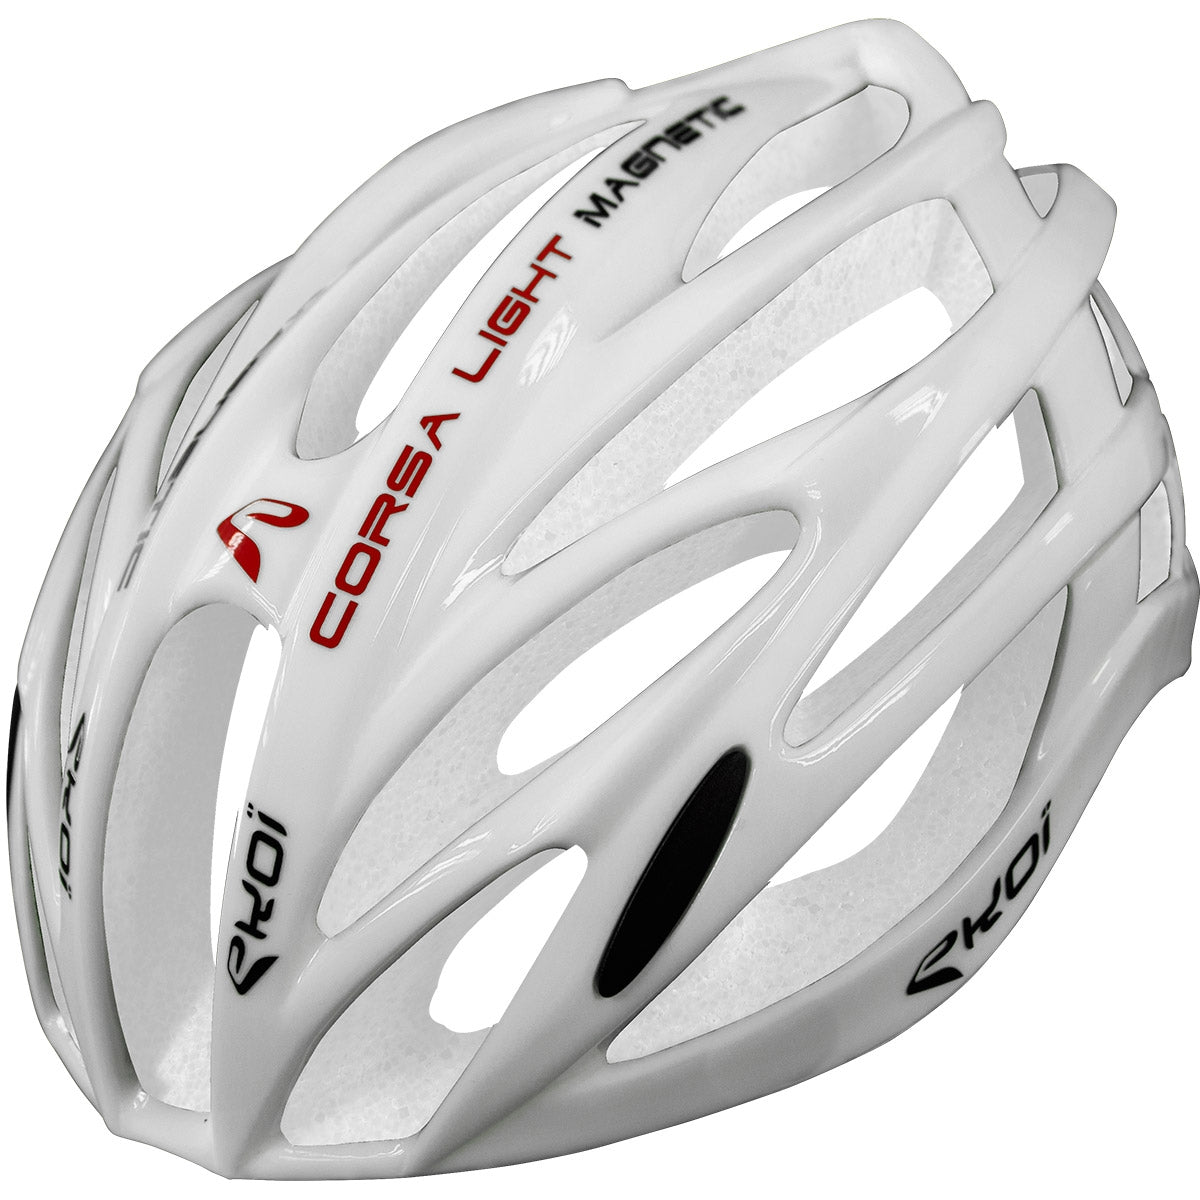 EKOI CORSA LIGHT 2017 FULL WHITE HELMET